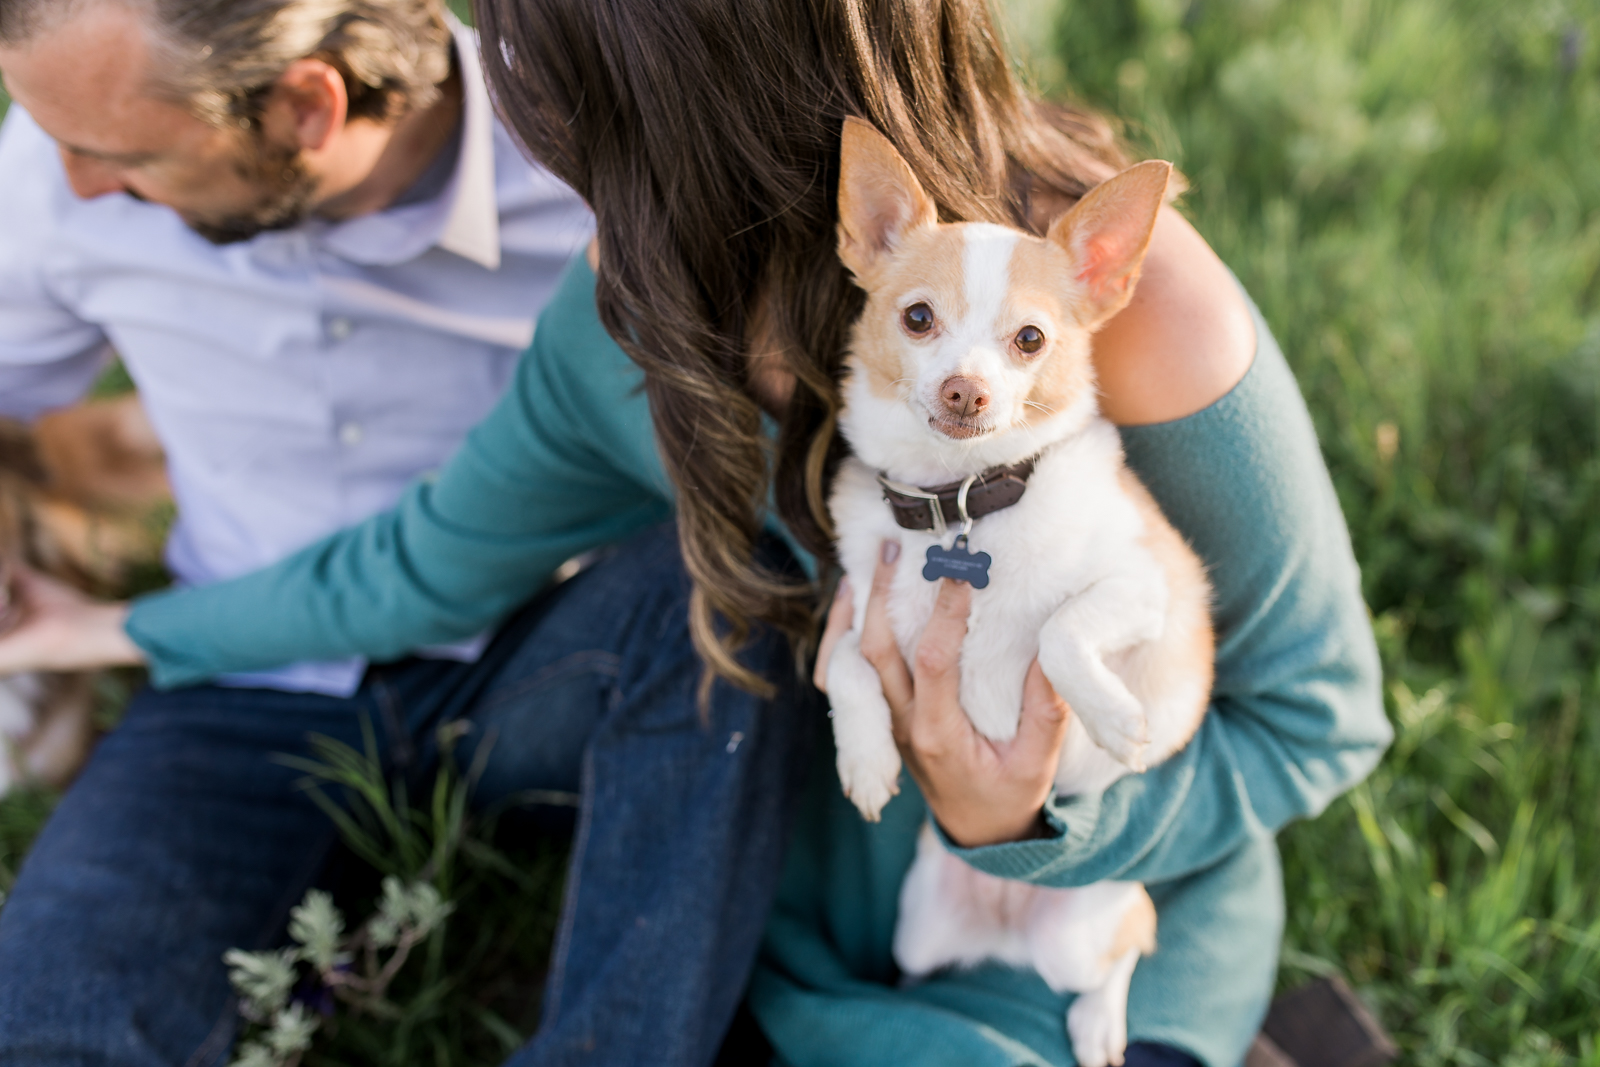 Engagement photography in Wyoming by Laramie based photographer, Encampment Wyoming, couple with dog, chihuahua